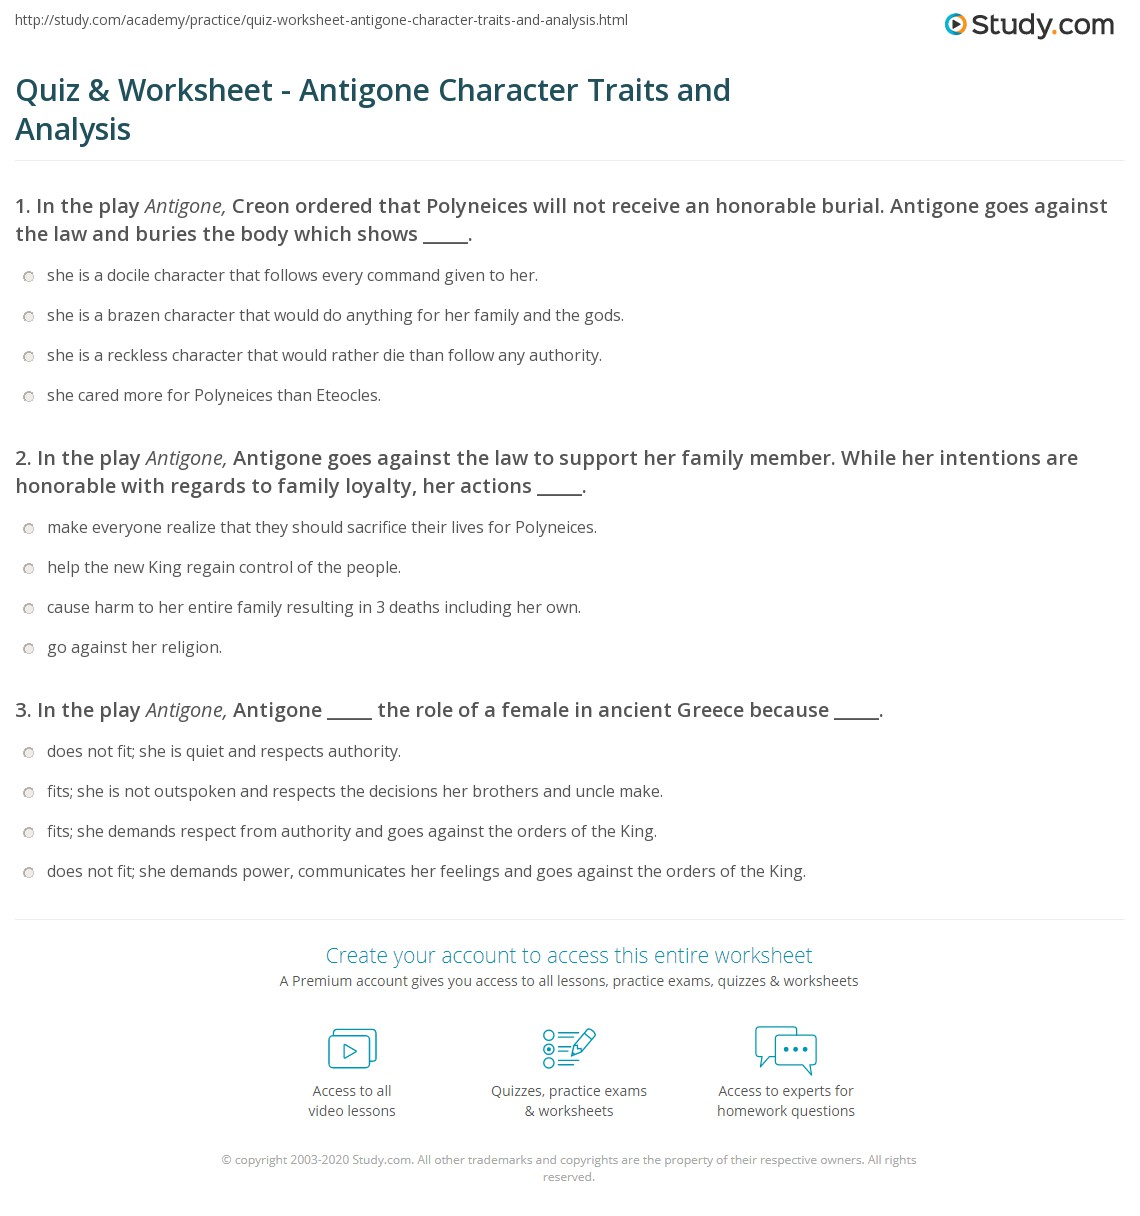 Quiz & Worksheet - Antigone Character Traits and Analysis | Study.com